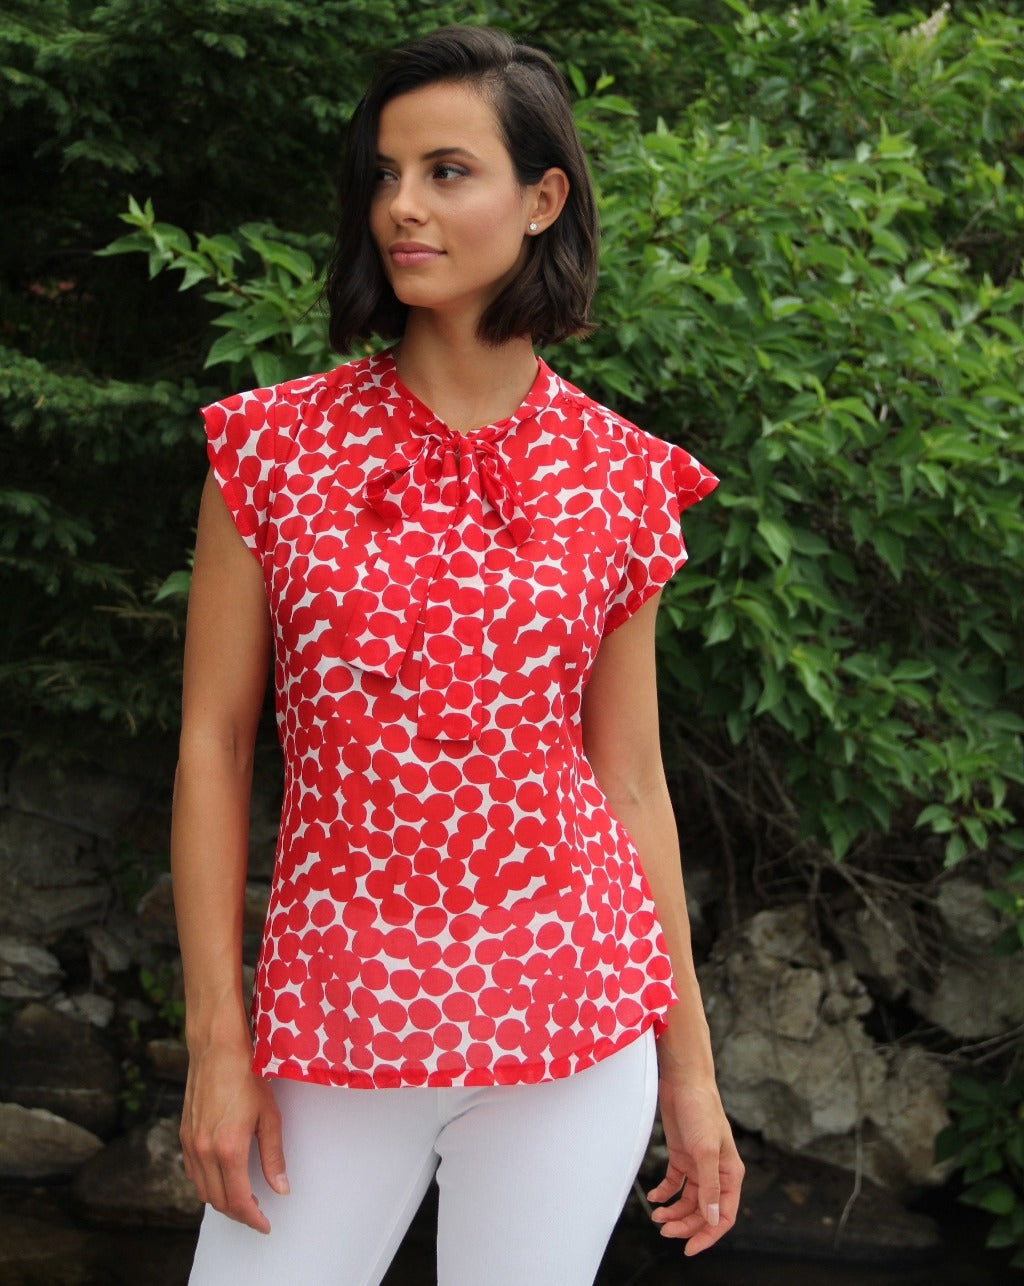 DITEFUL Cap Sleeve Top in Printed Cotton Silk - Final Sale